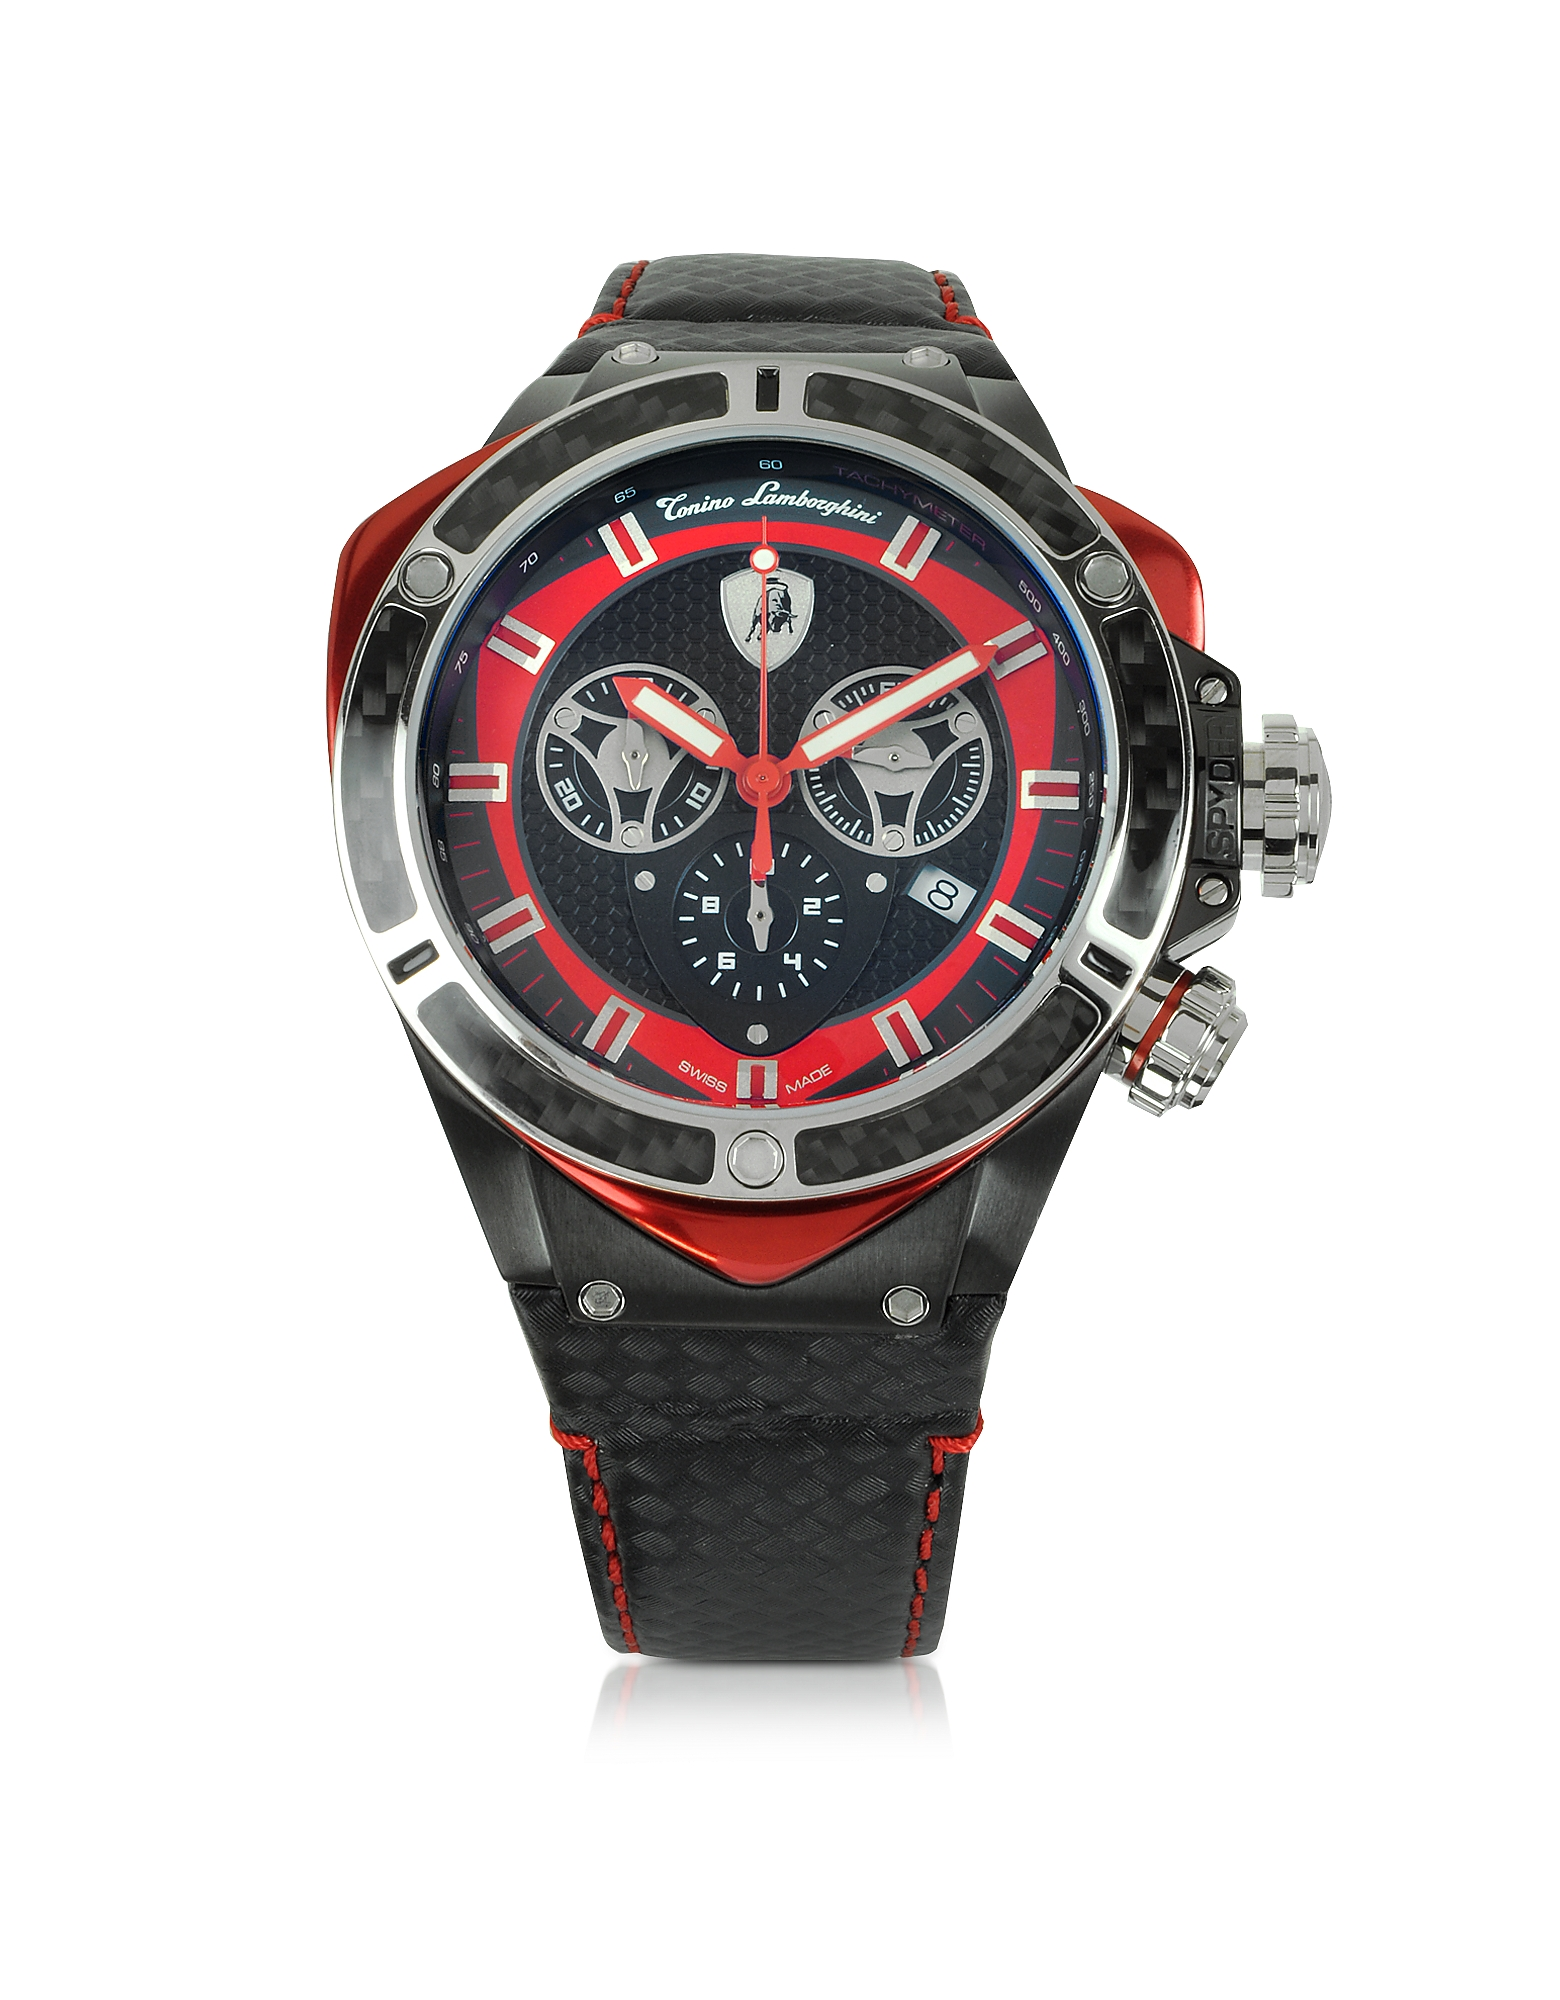 Tonino Lamborghini Men's Watches, Black Stainless Steel and Carbon Fiber Spyder Chronograph Watch